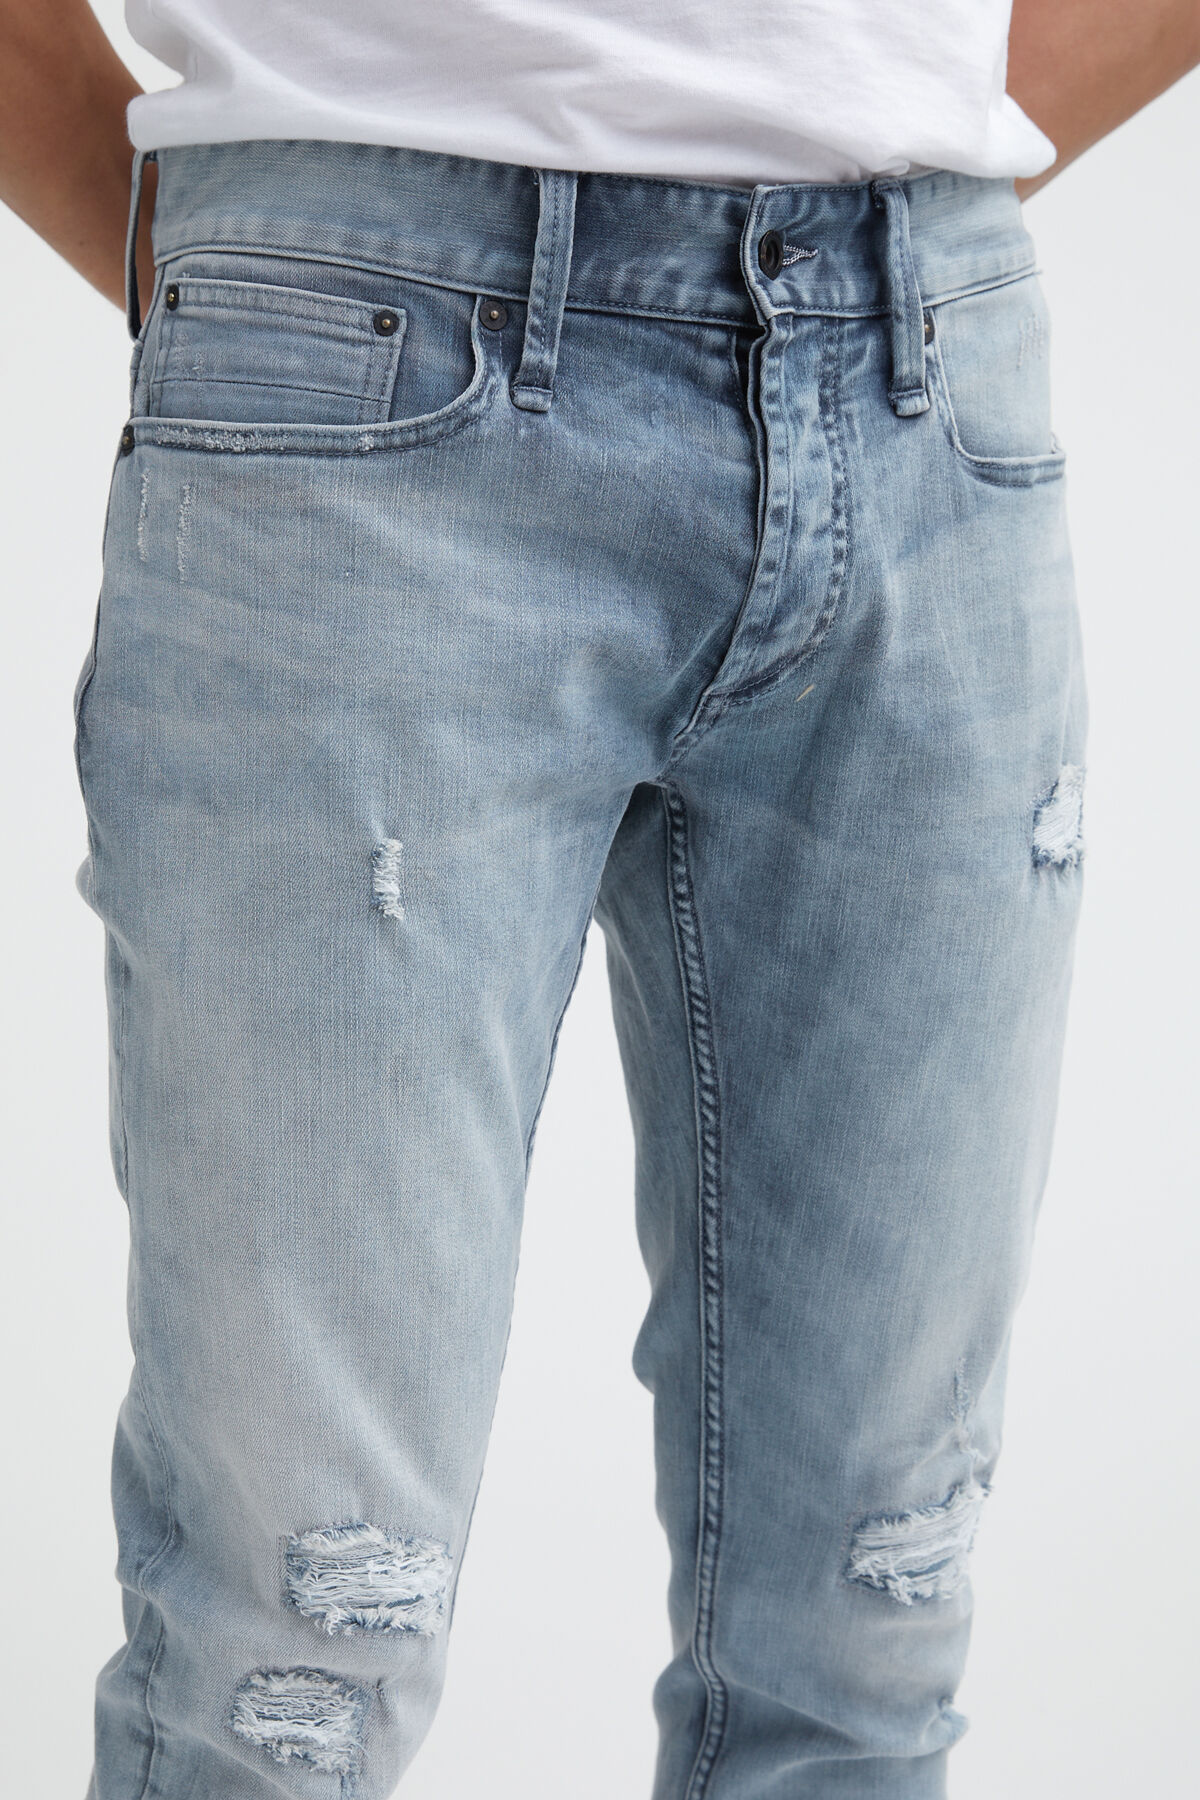 RAZOR Blue/Grey Cast, Rip & Repair Denim - Slim Fit